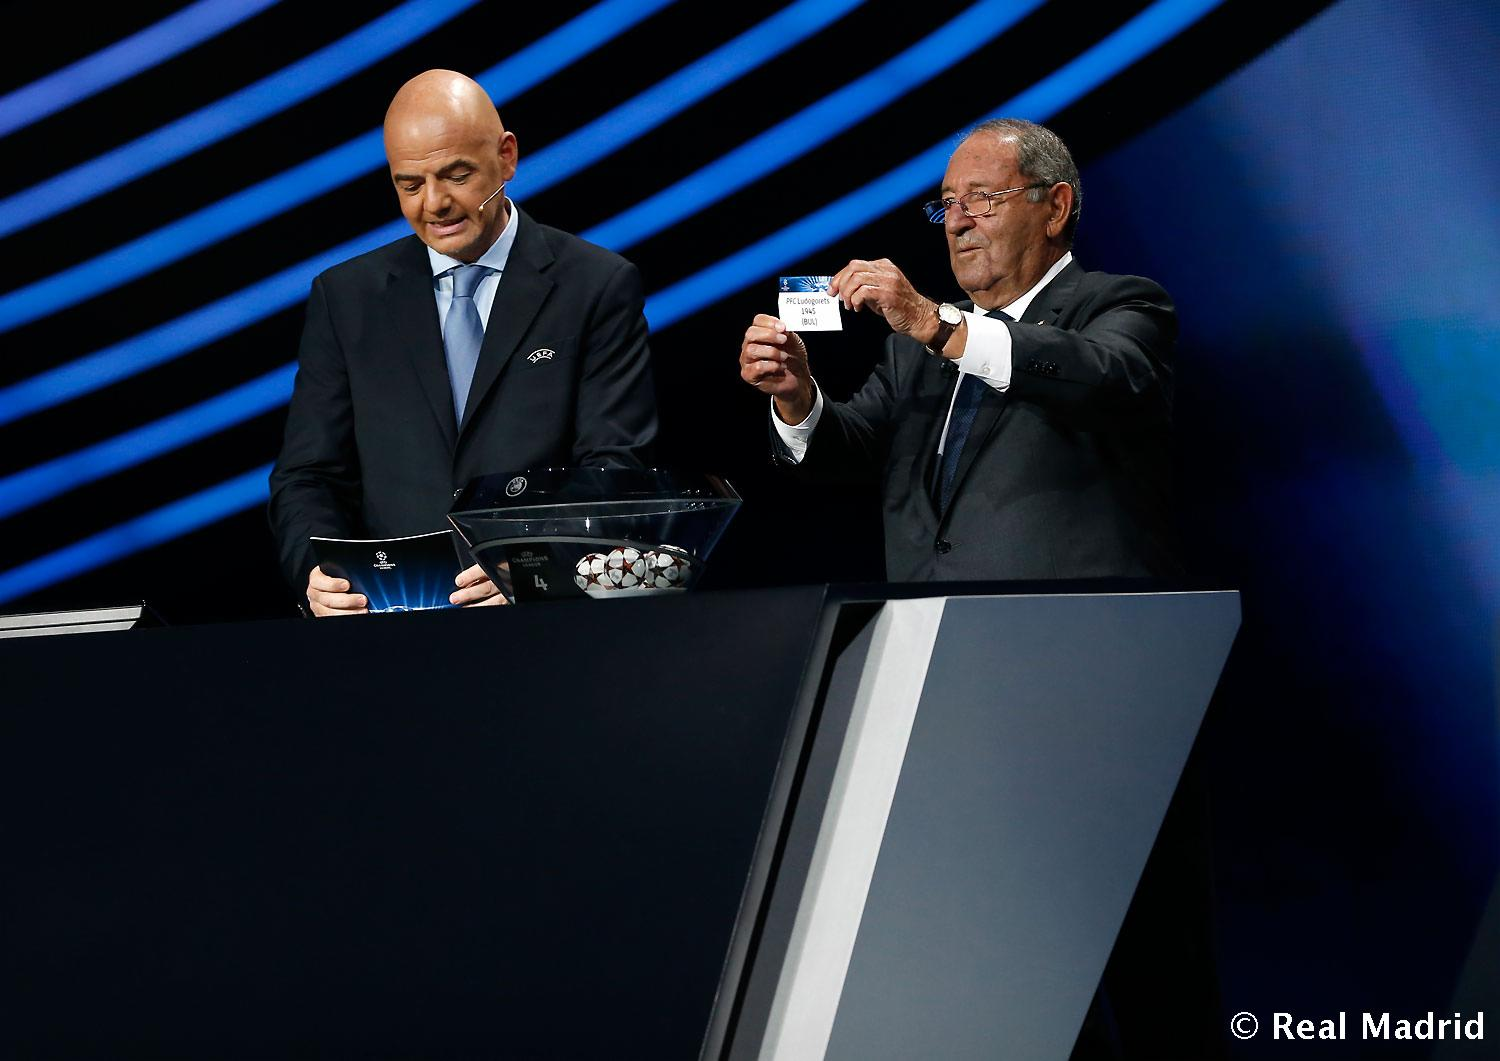 Real Madrid - Sorteo de la Champions League 14/15 - 28-08-2014